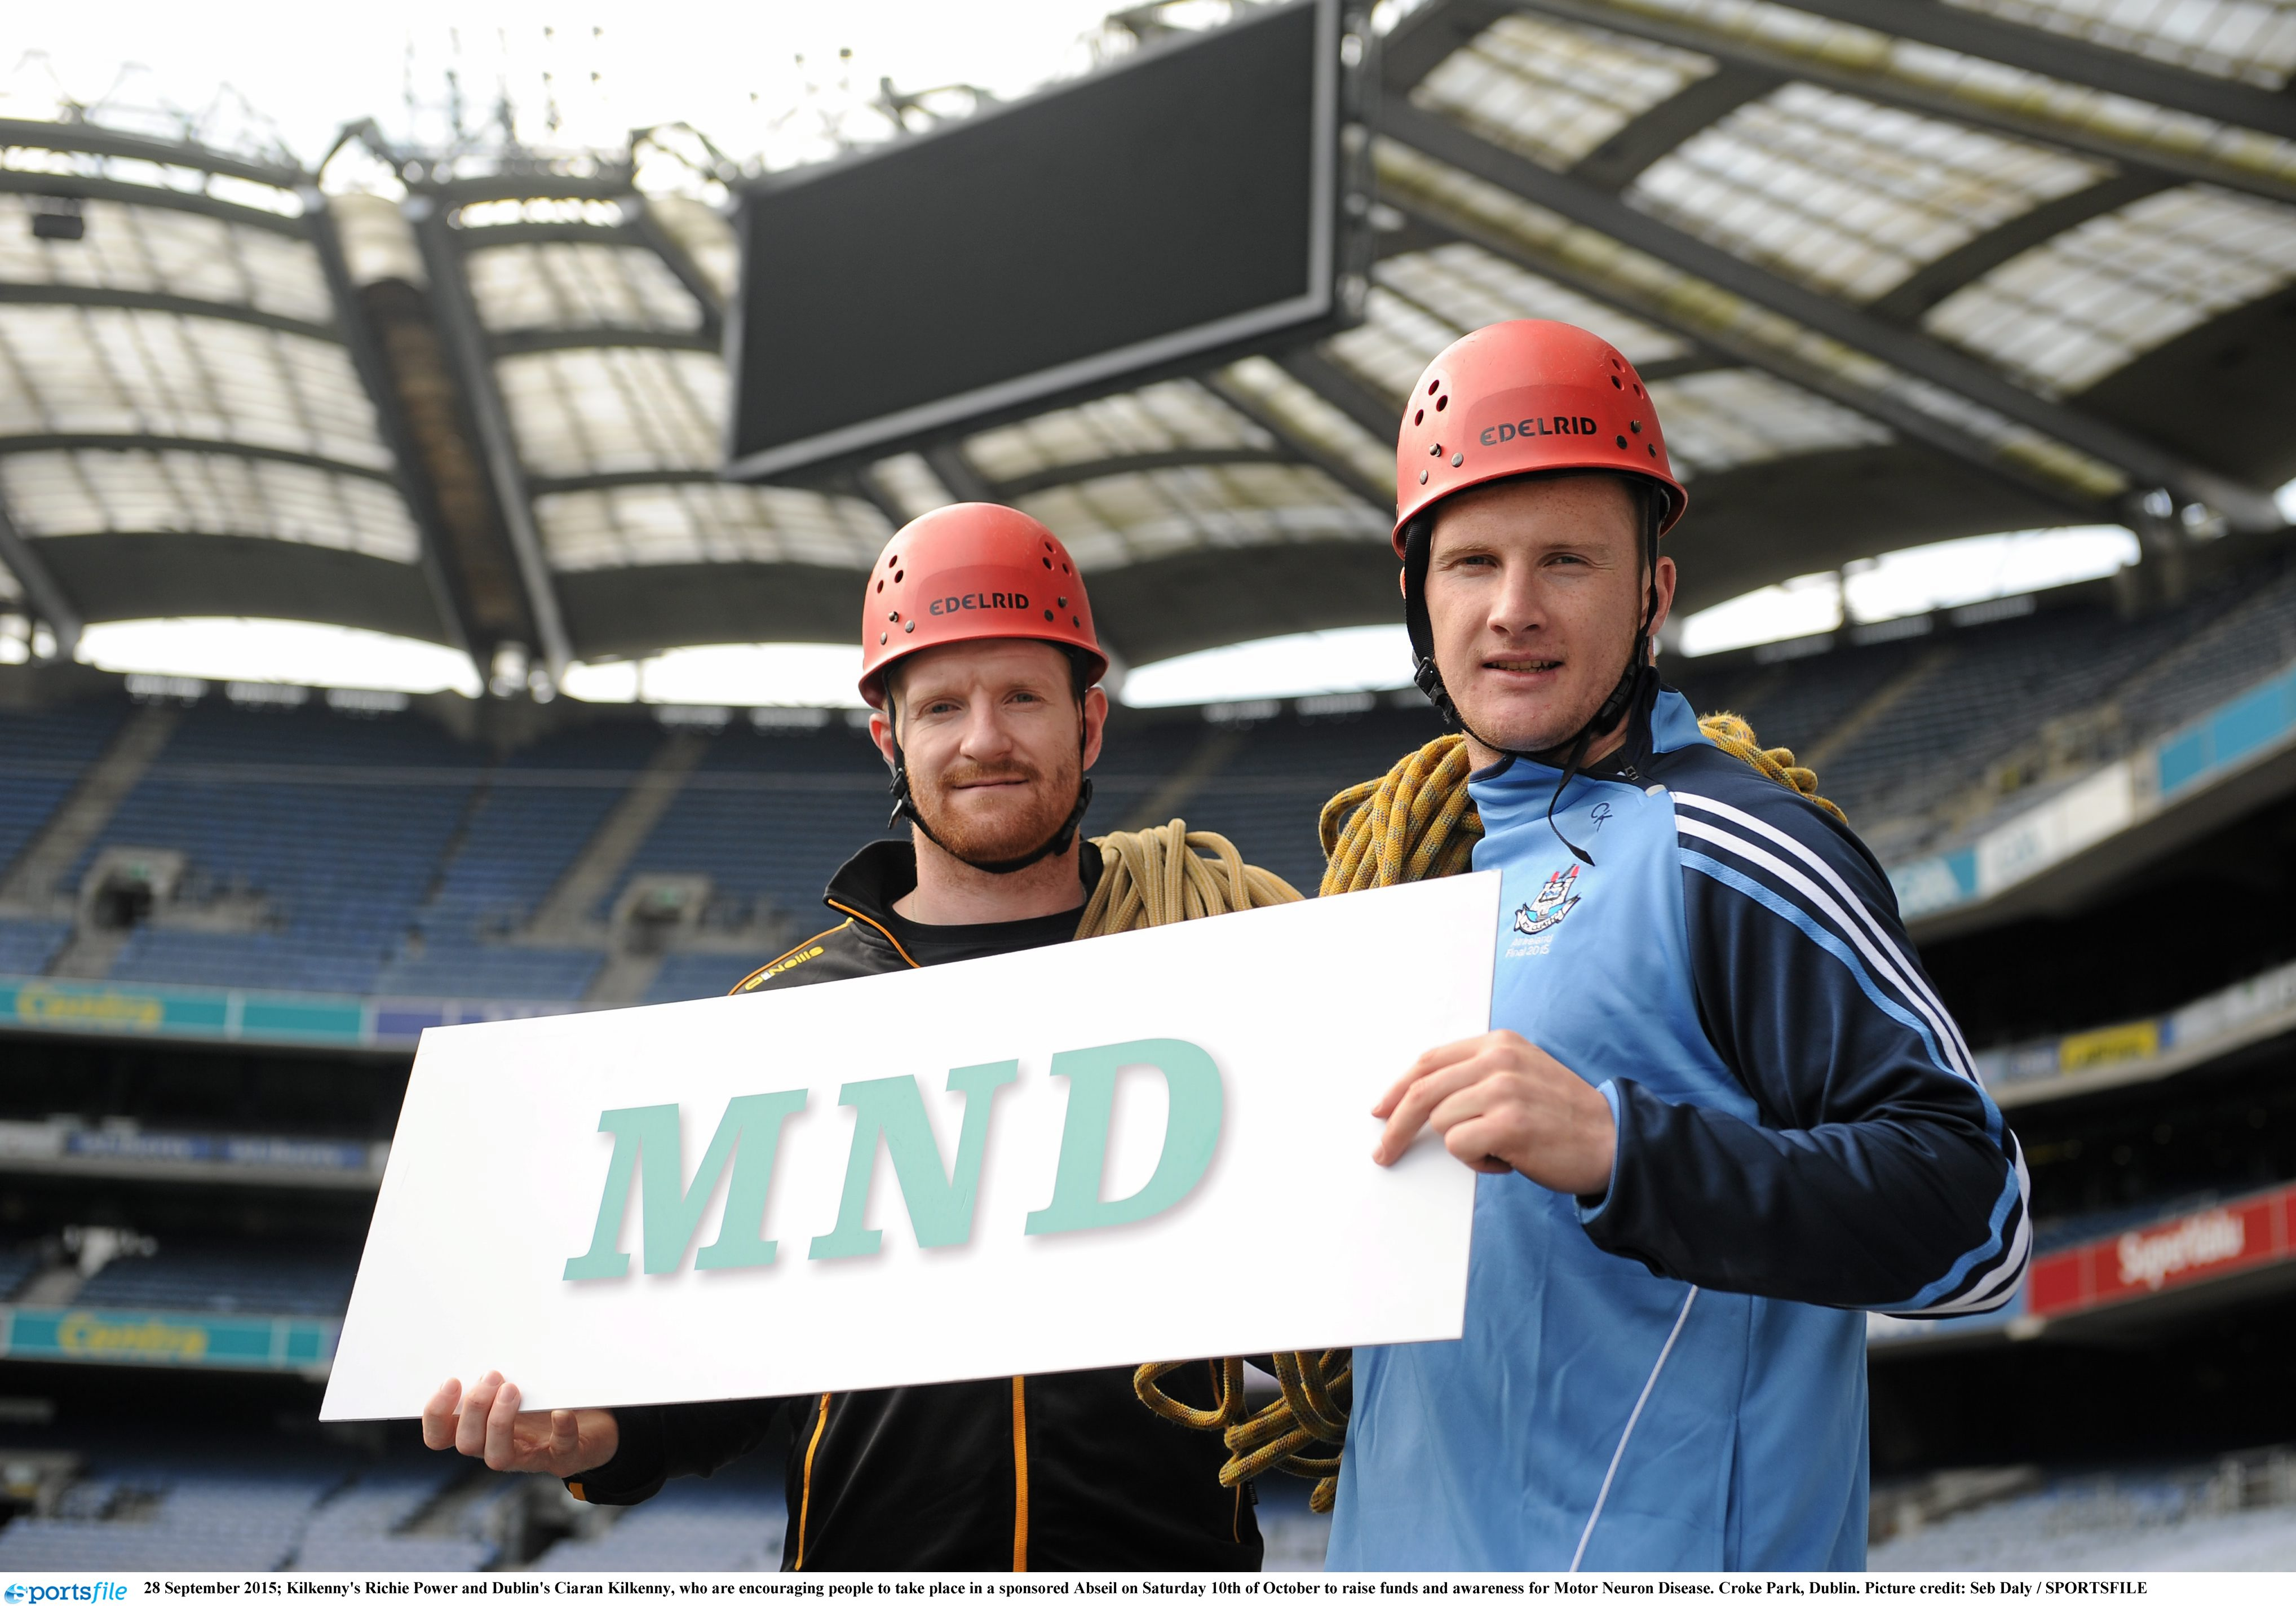 28 September 2015; Kilkenny's Richie Power and Dublin's Ciaran Kilkenny, who are encouraging people to take place in a sponsored Abseil on Saturday 10th of October to raise funds and awareness for Motor Neuron Disease. Croke Park, Dublin. Picture credit: Seb Daly / SPORTSFILE